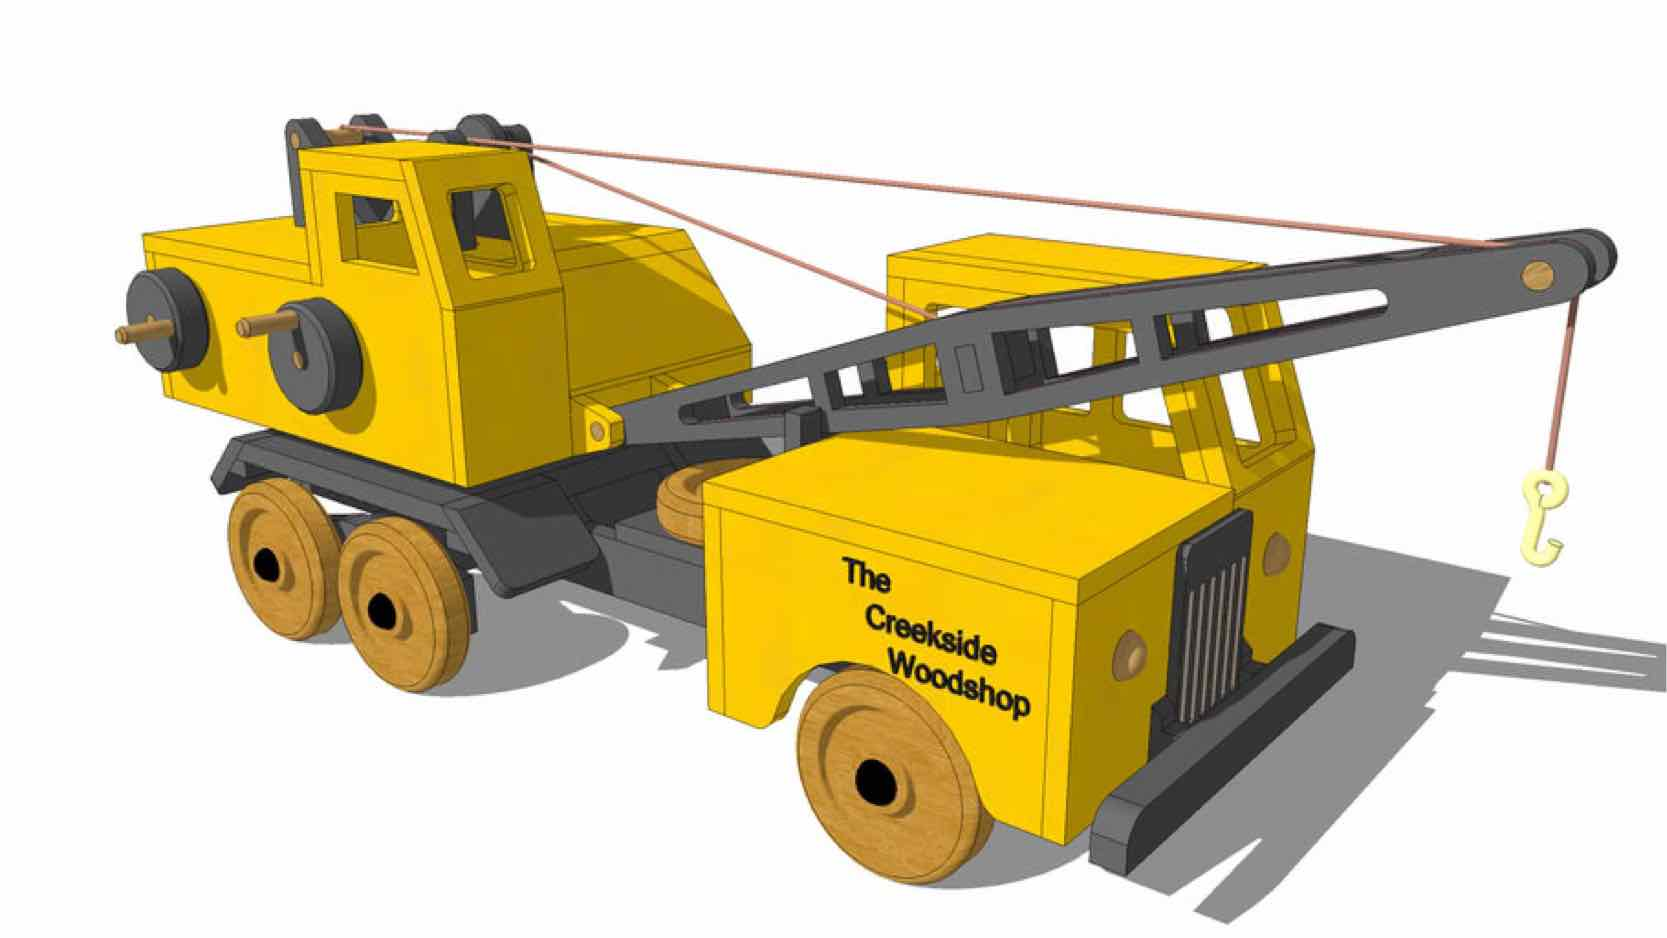 construction equipment,toys,childrens,sketchup,Google 3D,3-D warehouse,trucks,cranes,childs,kids,drawings,free woodworking plans,projects,do it yourself,woodworkers